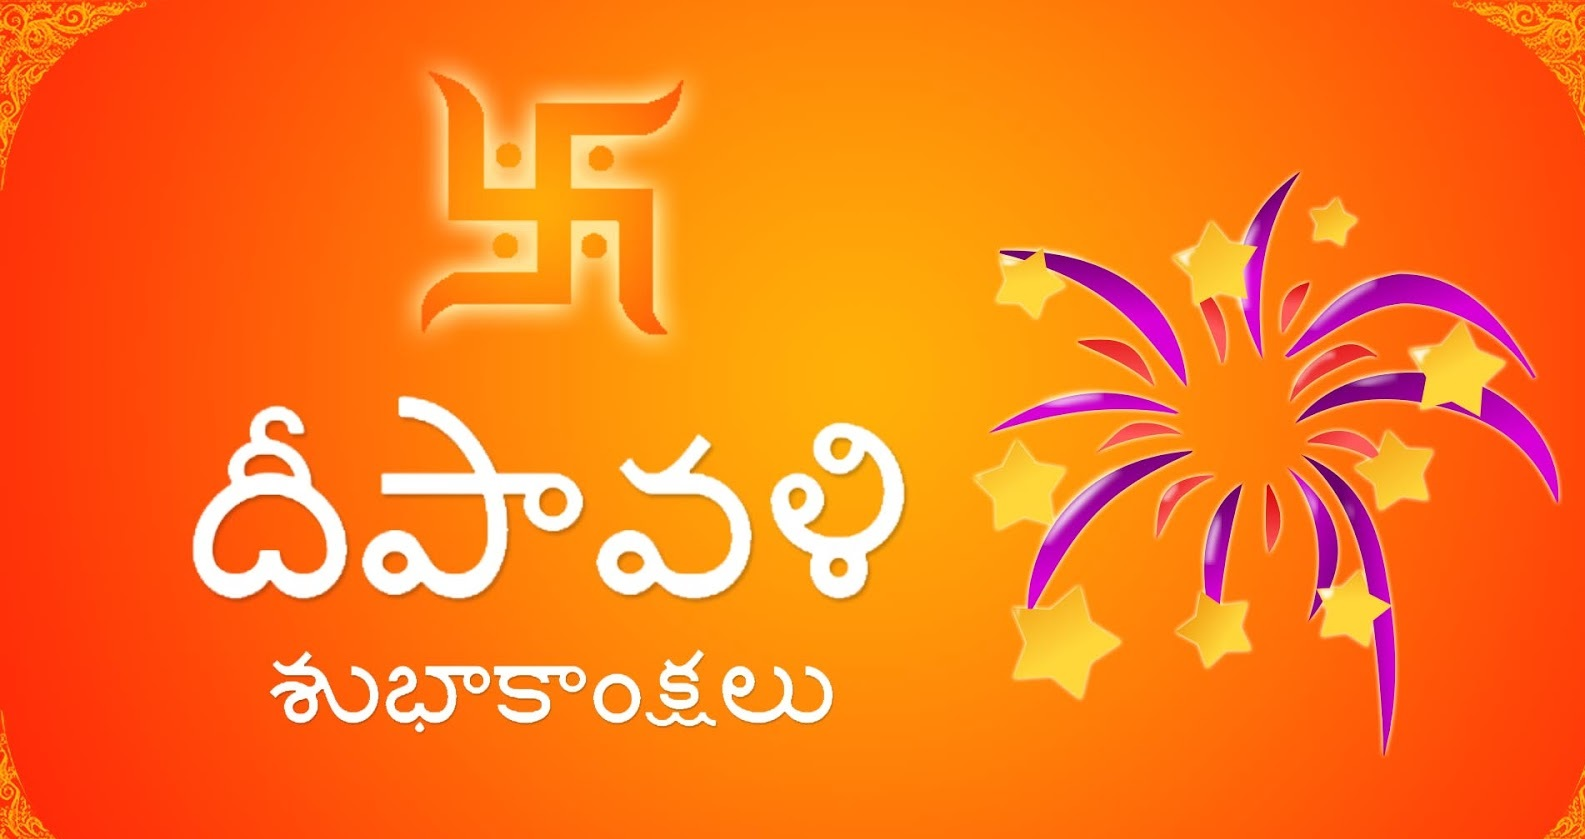 diwali essay short english essays for students short english  diwali festival essay telugu best diwali essay in telugu language diwali dhamaka diwali dhamaka best diwali